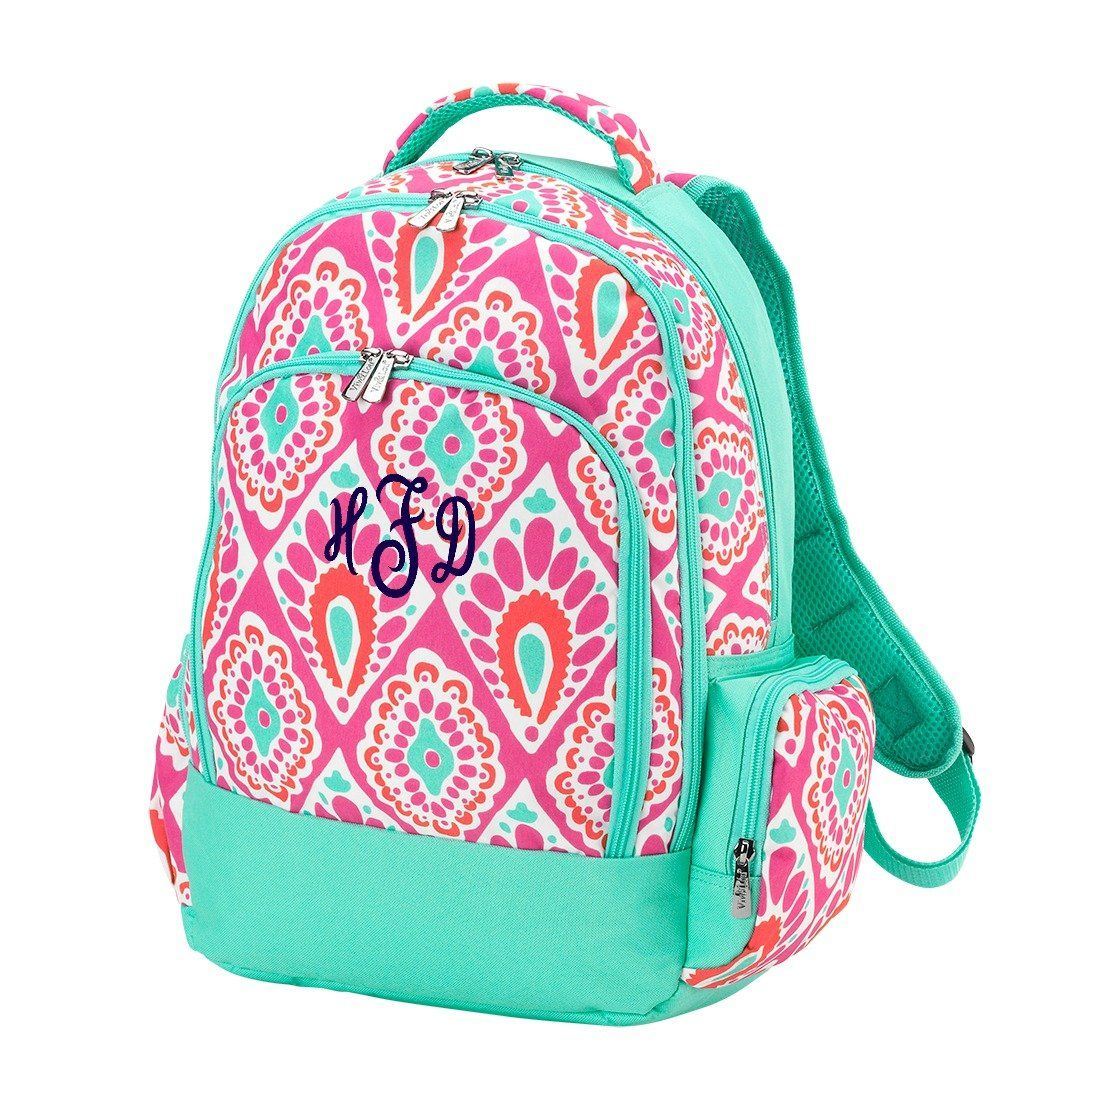 Personalized Backpack Bookbag Kids School Tote Bag   Products ... 77842692c9